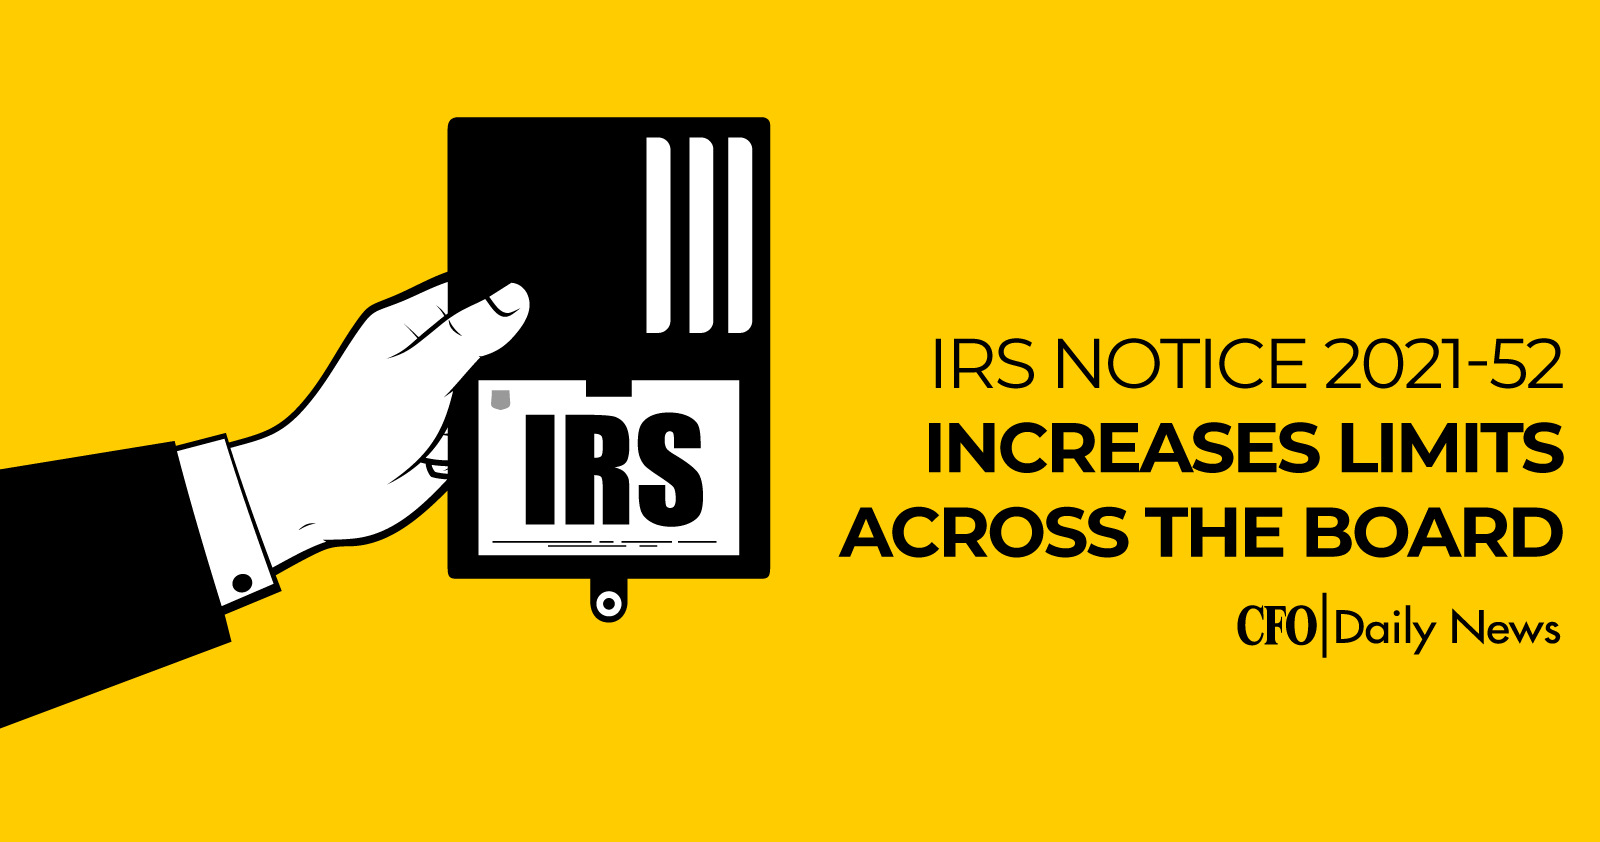 IRS notice 2021-52 increases limits across the board